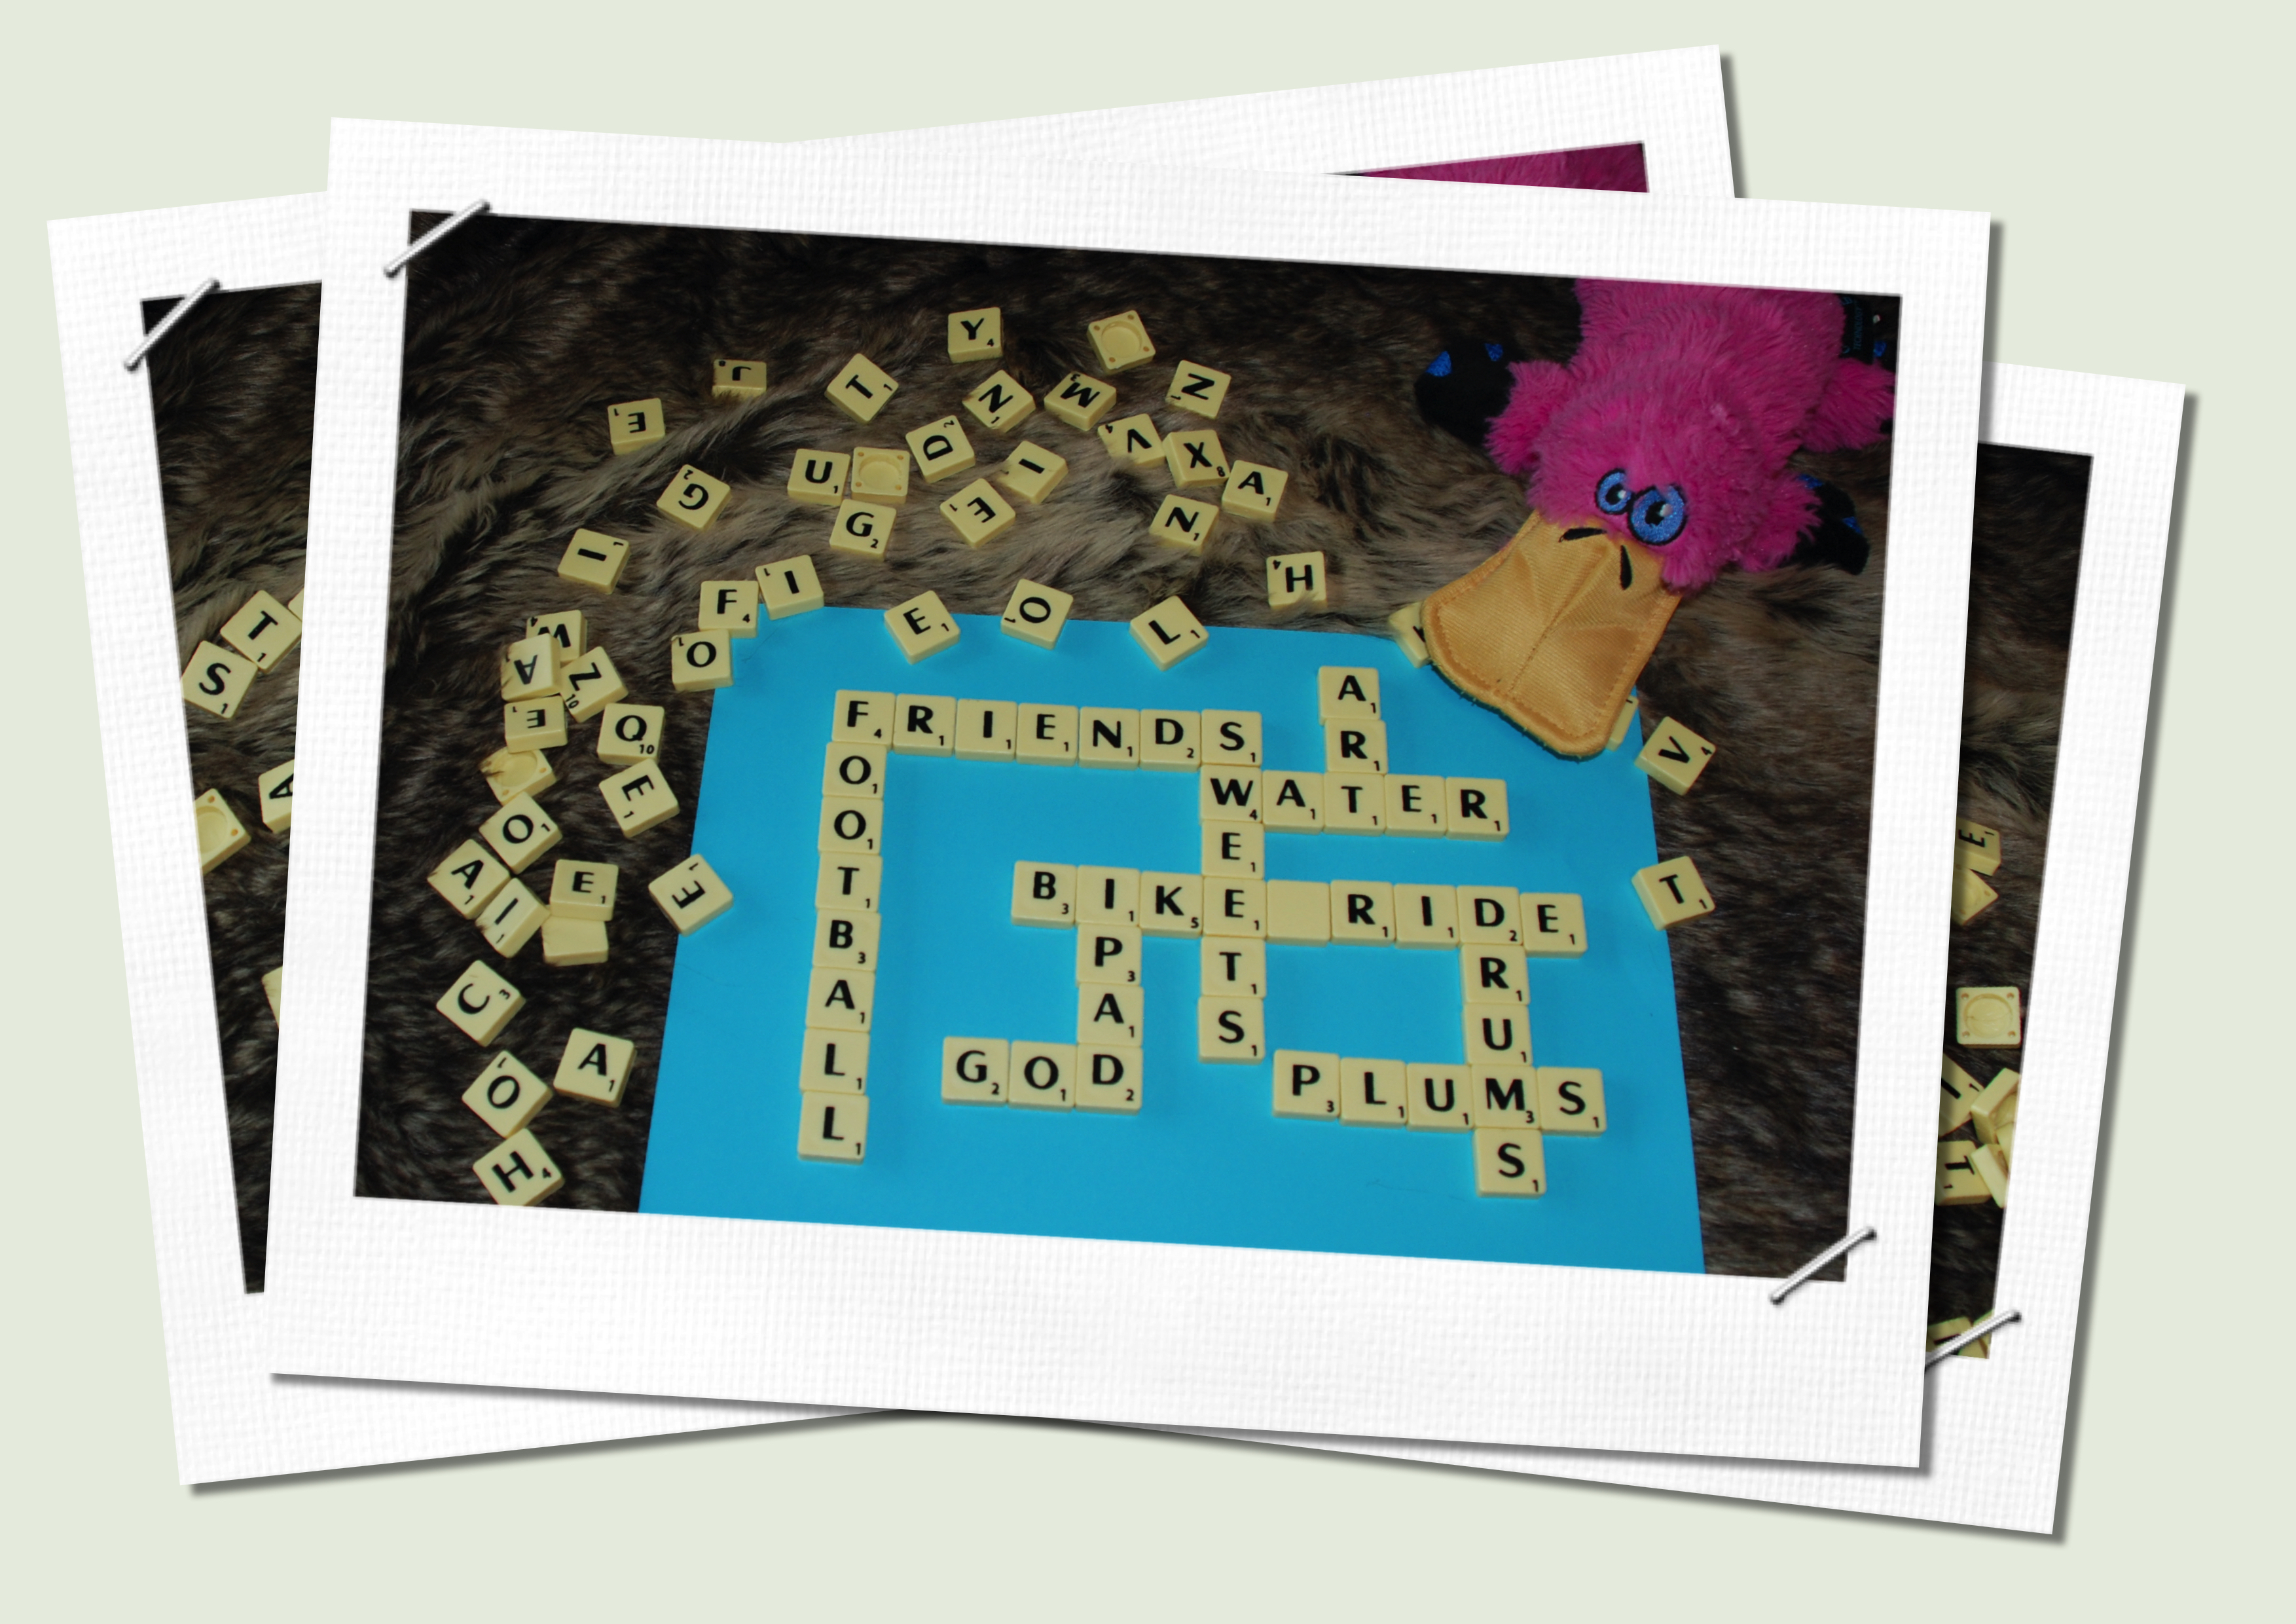 Image shows a representation of a pile of pictures. the top one shows the standard use of scrabble, with the cheat with blank tiles mentioned in the  text. Anno the pink platypus toy is also in the photo.